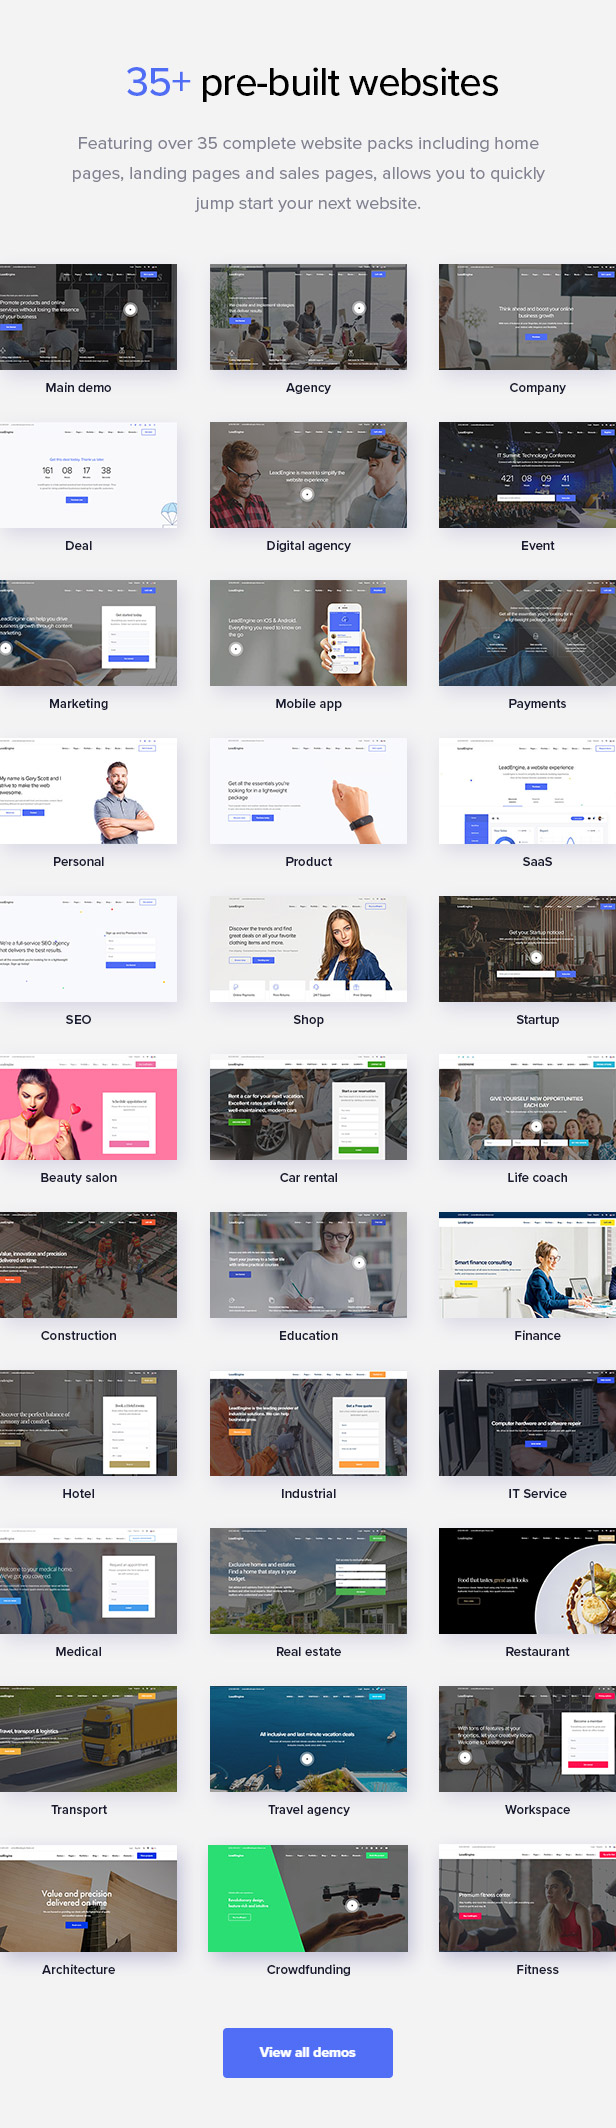 promo2a - LeadEngine - Multi-Purpose WordPress Theme with Page Builder